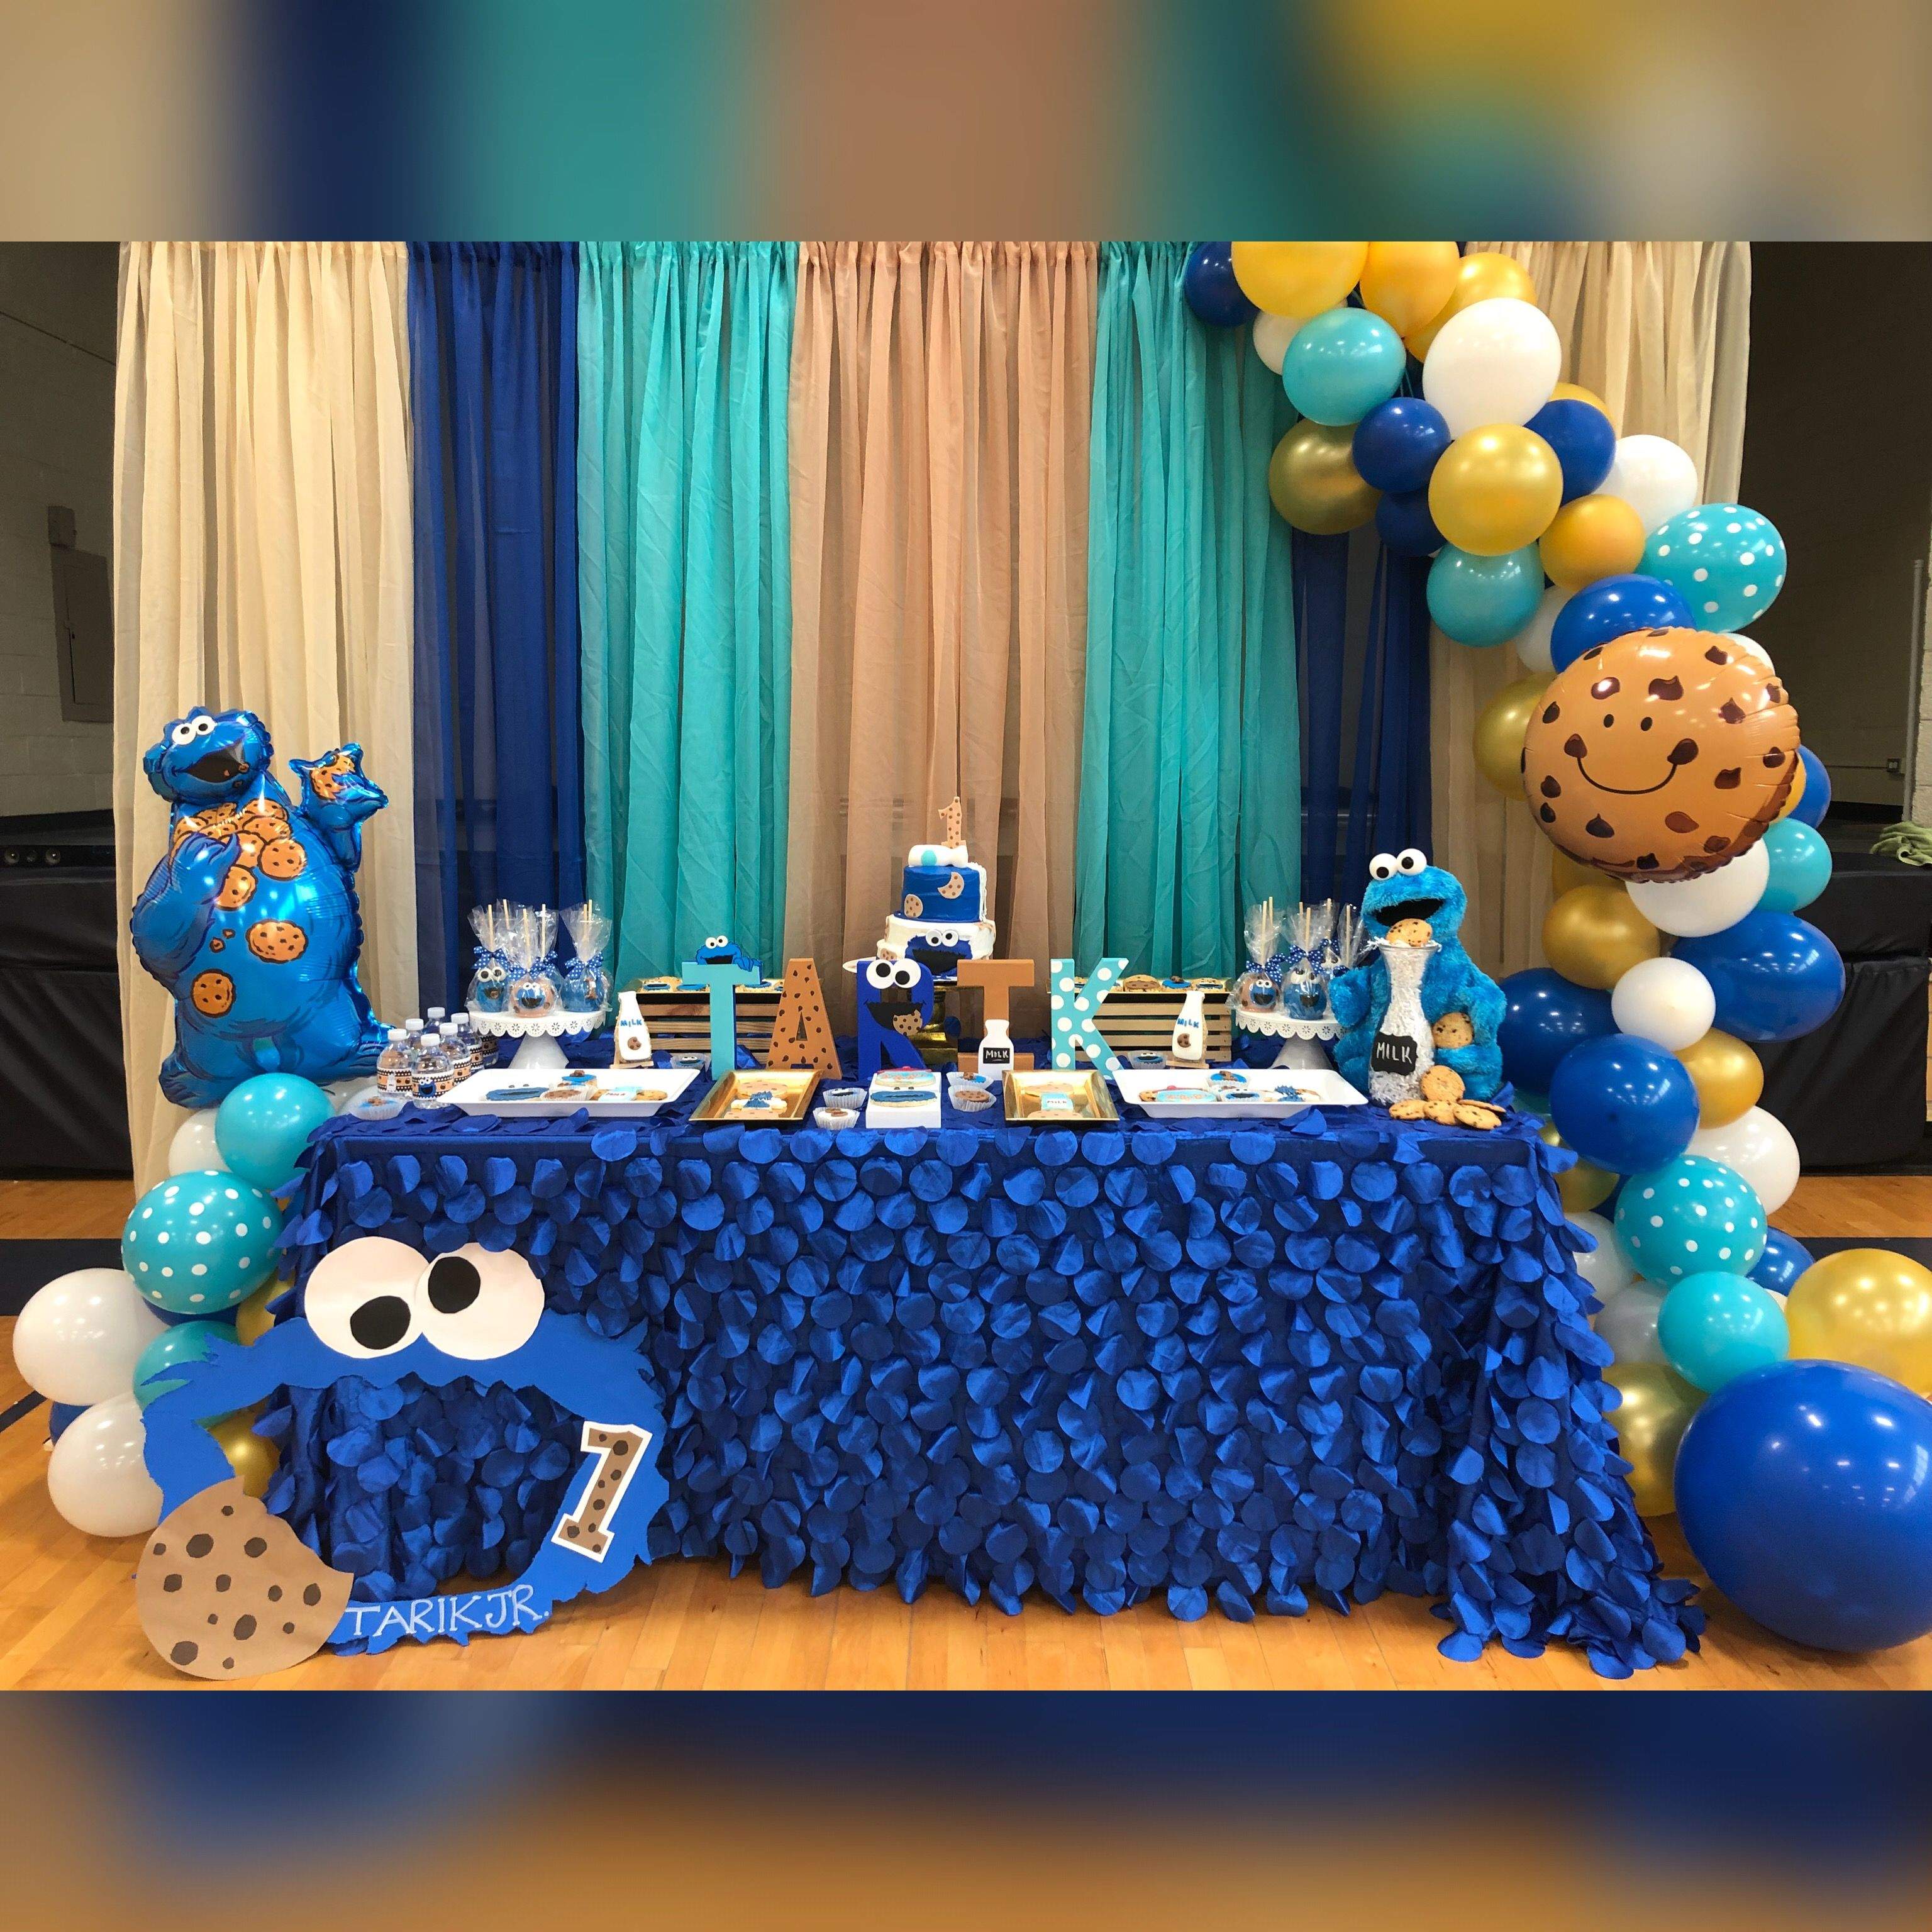 Pin By Jayla Bilbo On Birthdays Cookie Monster Birthday Party Cookie Monster Party Cookie Birthday Party